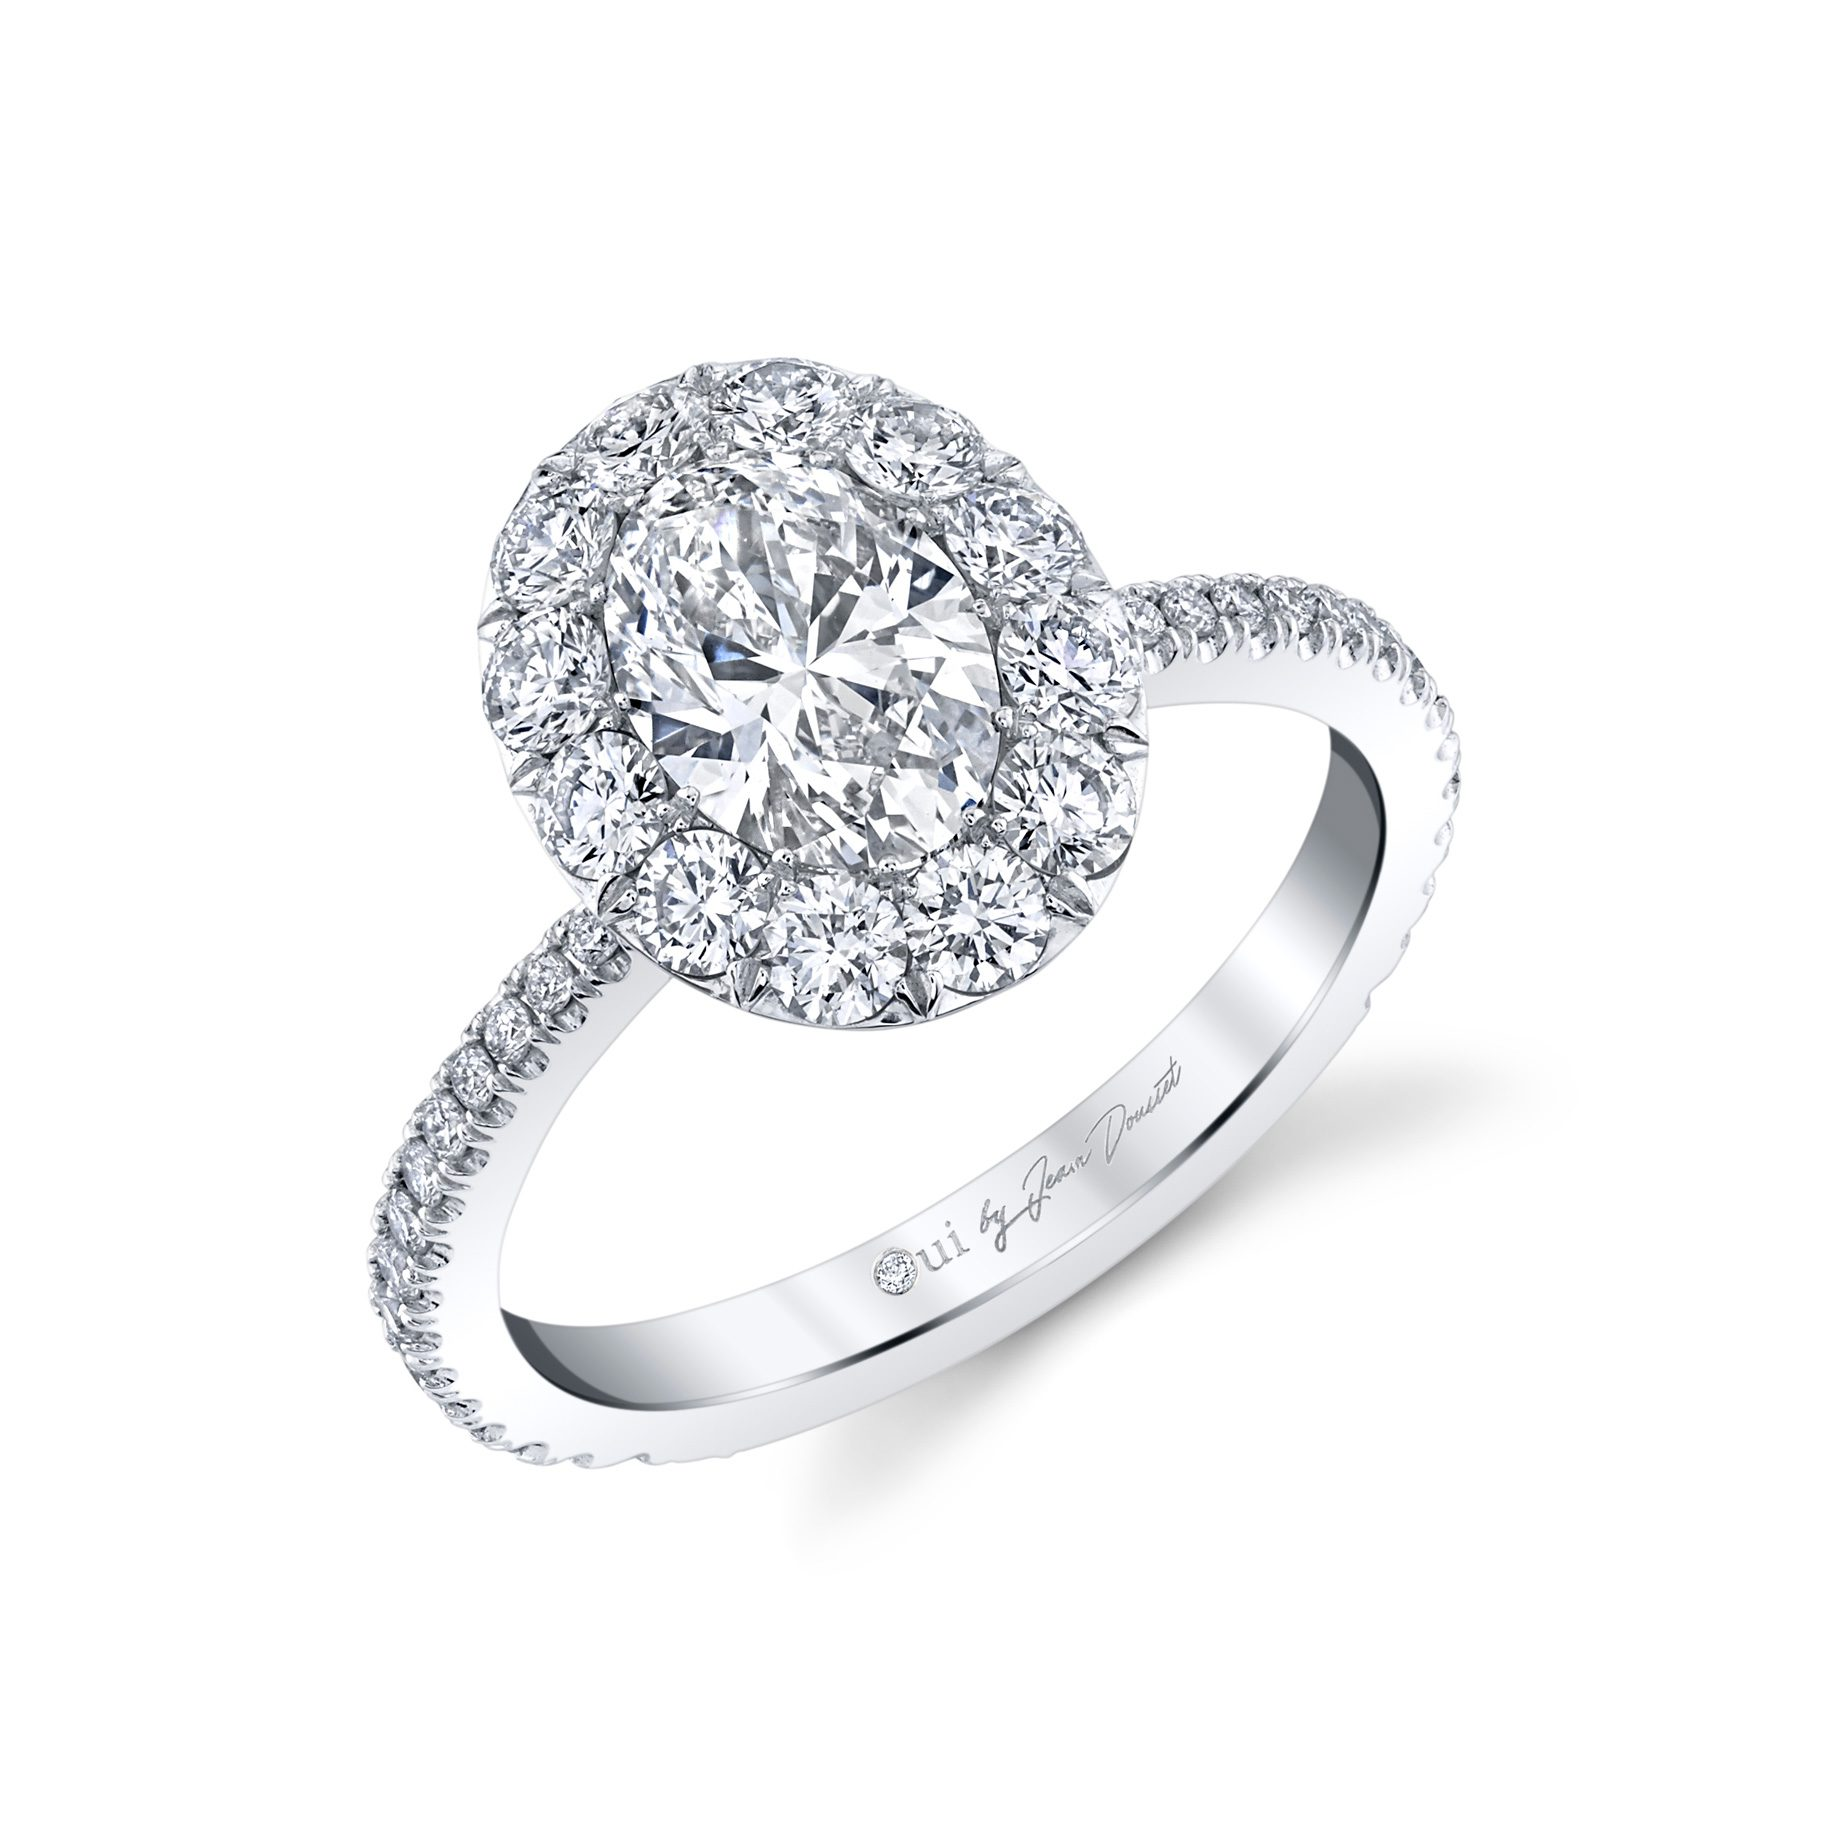 Eloise Floating Oval Seamless Solitaire® Engagement Ring with diamond pavé in 18k White Gold Profile View by Oui by Jean Dousset